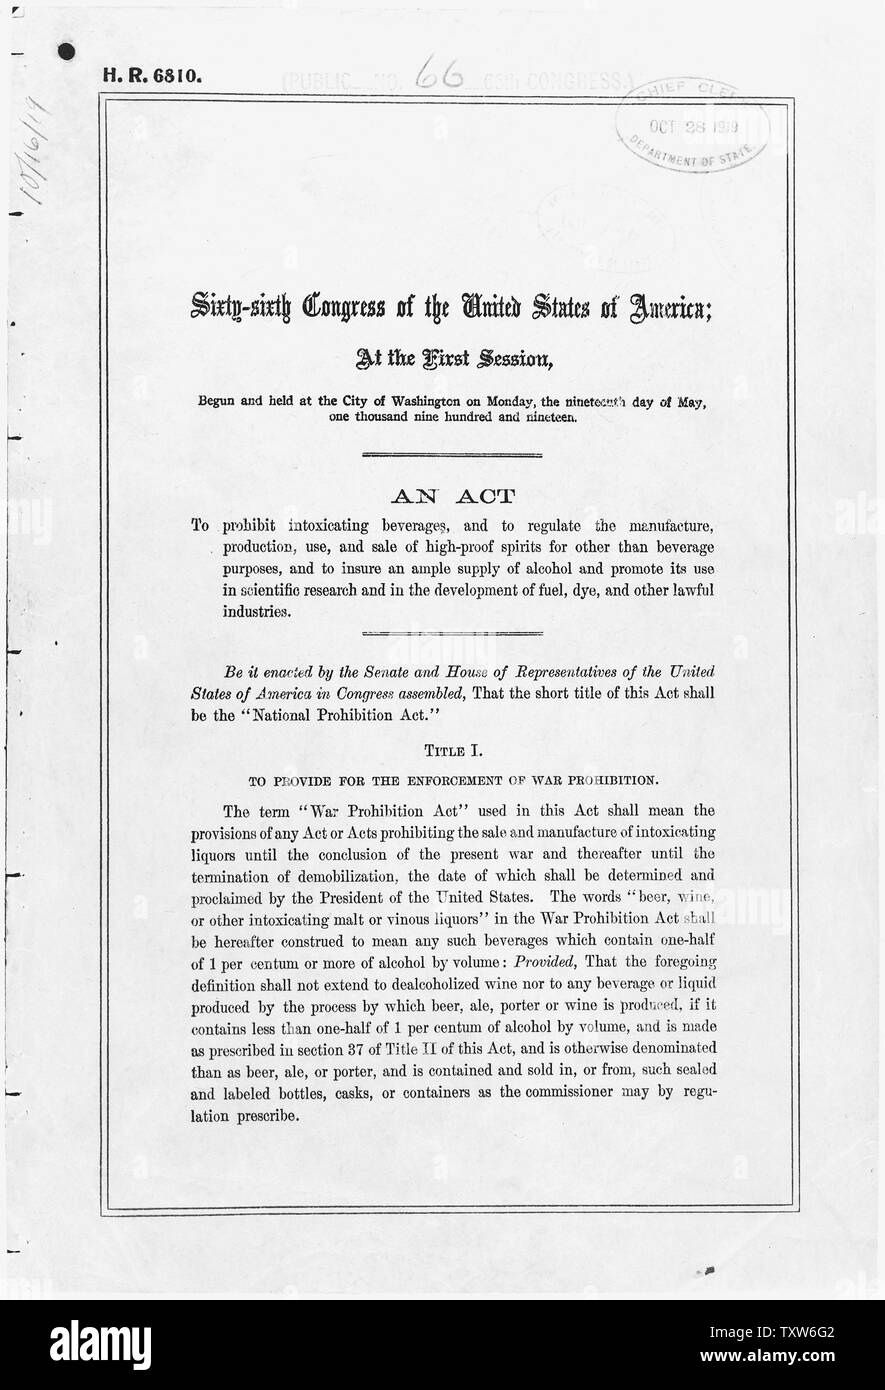 Act of October 28, 1919 [Volstead Act]; Scope and content:  The Volstead Act implemented and provided an enforcement apparatus for the Eighteenth Amendment, which forbade the manufacture, transportation, and sale of intoxicating beverages. Circumvention of the law led to bootlegging and the rise of organized crime. General notes:  The text of all federal laws is published in the U.S. Statutes at Large, a multivolume publication at libraries nationwide. The Volstead Act is found in volume 41 of Statutes at Large, pp. 305-323 (41 Stat. 305). Exhibit History: The Written Word Endures, April 1976 Stock Photo